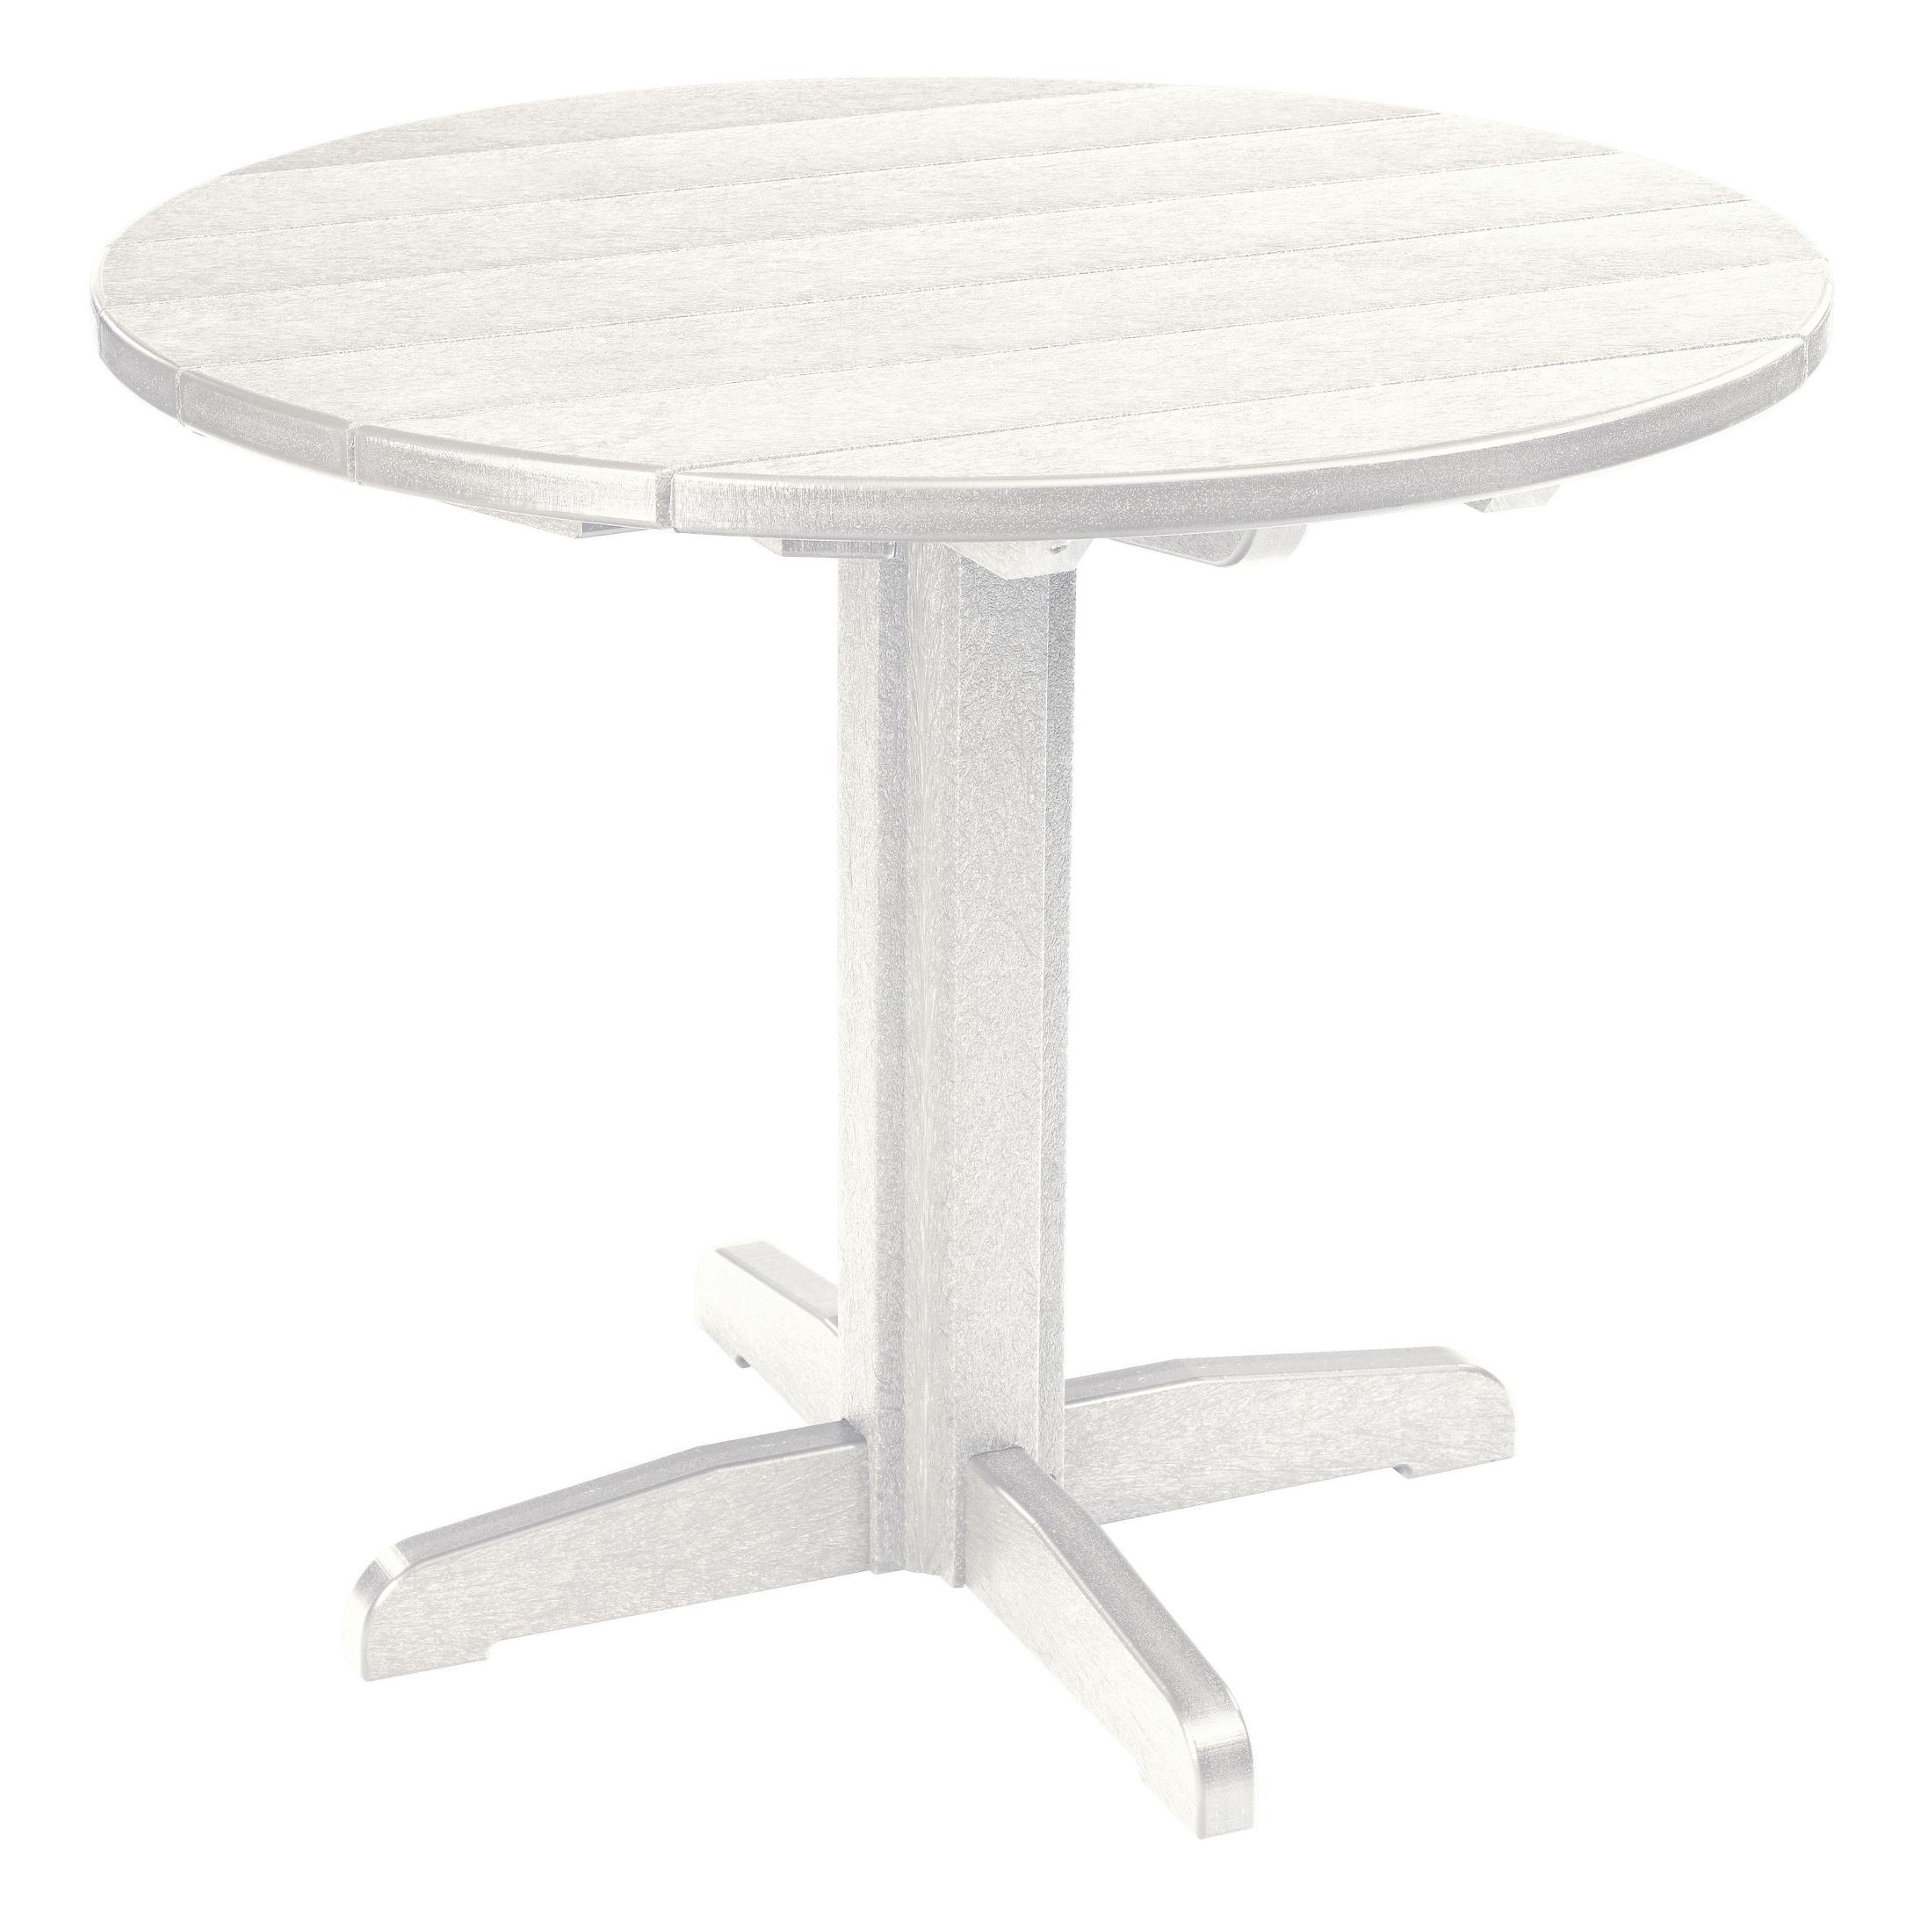 Generations White 37quot Round Pedestal Dining Table from CR  : tbt2202tt02tb1202 from colemanfurniture.com size 2187 x 2200 jpeg 407kB